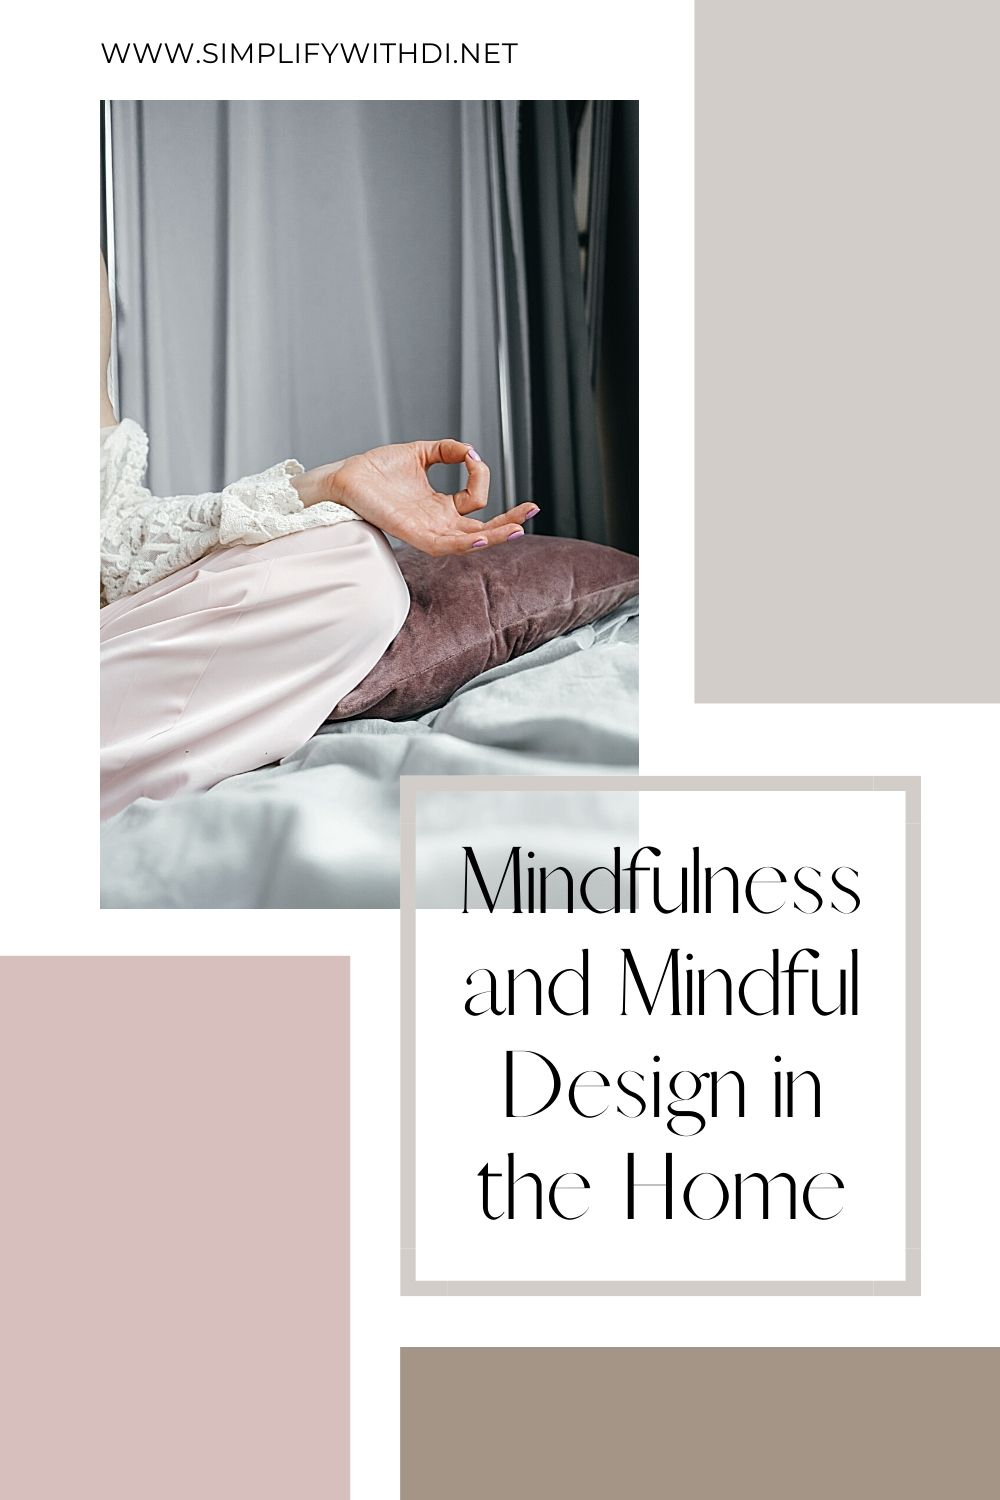 mindfulness and mindful design in the home